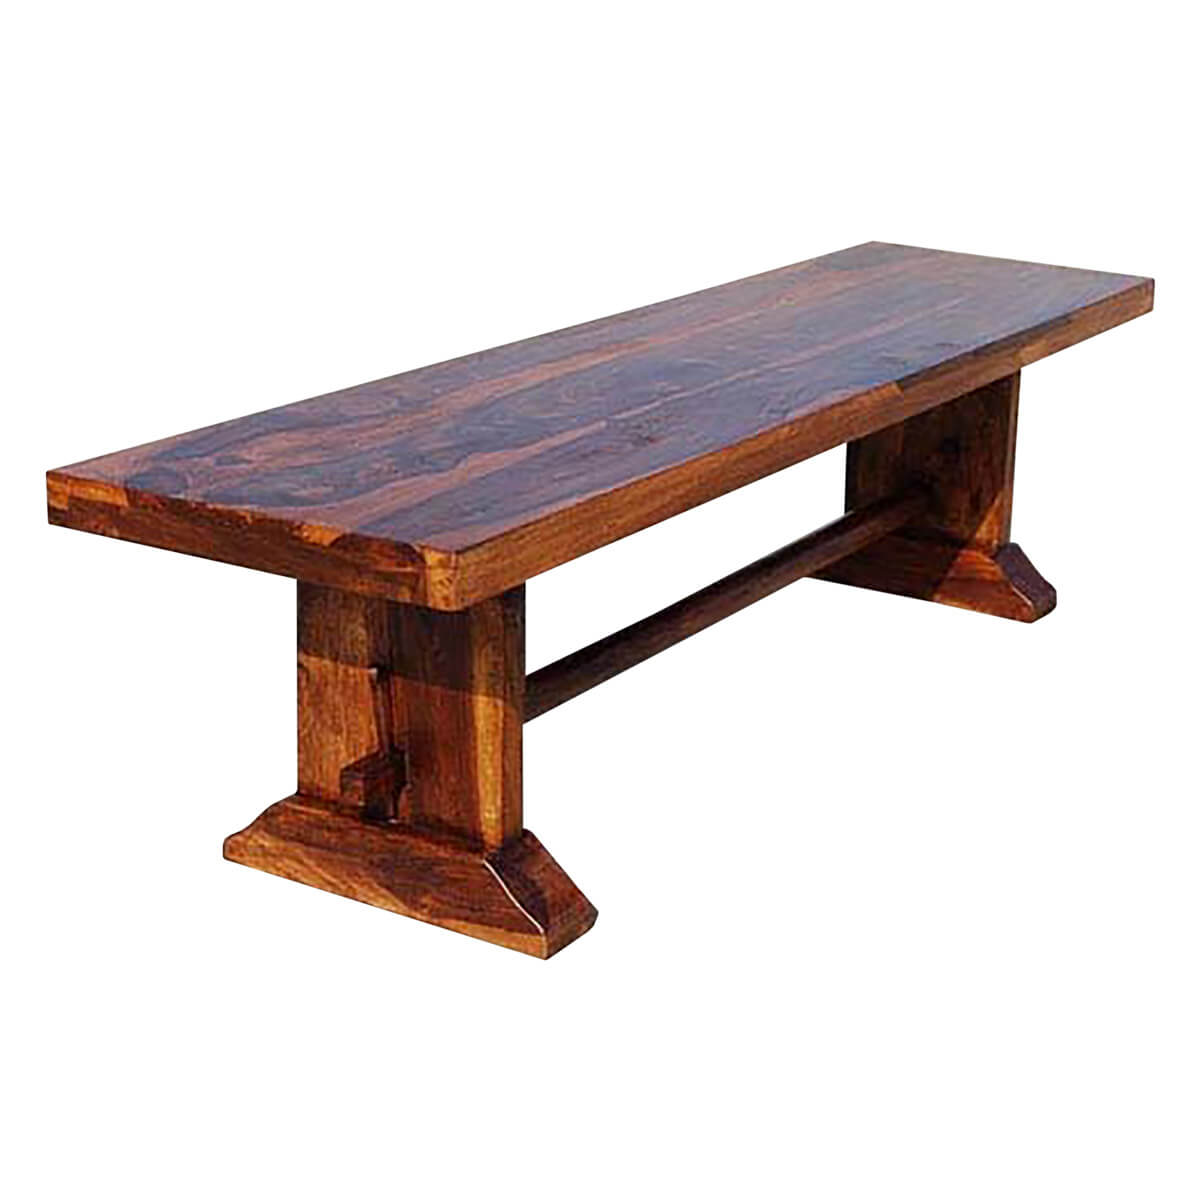 Prime Louvre Rustic Solid Wood Indoor Wooden Bench Evergreenethics Interior Chair Design Evergreenethicsorg